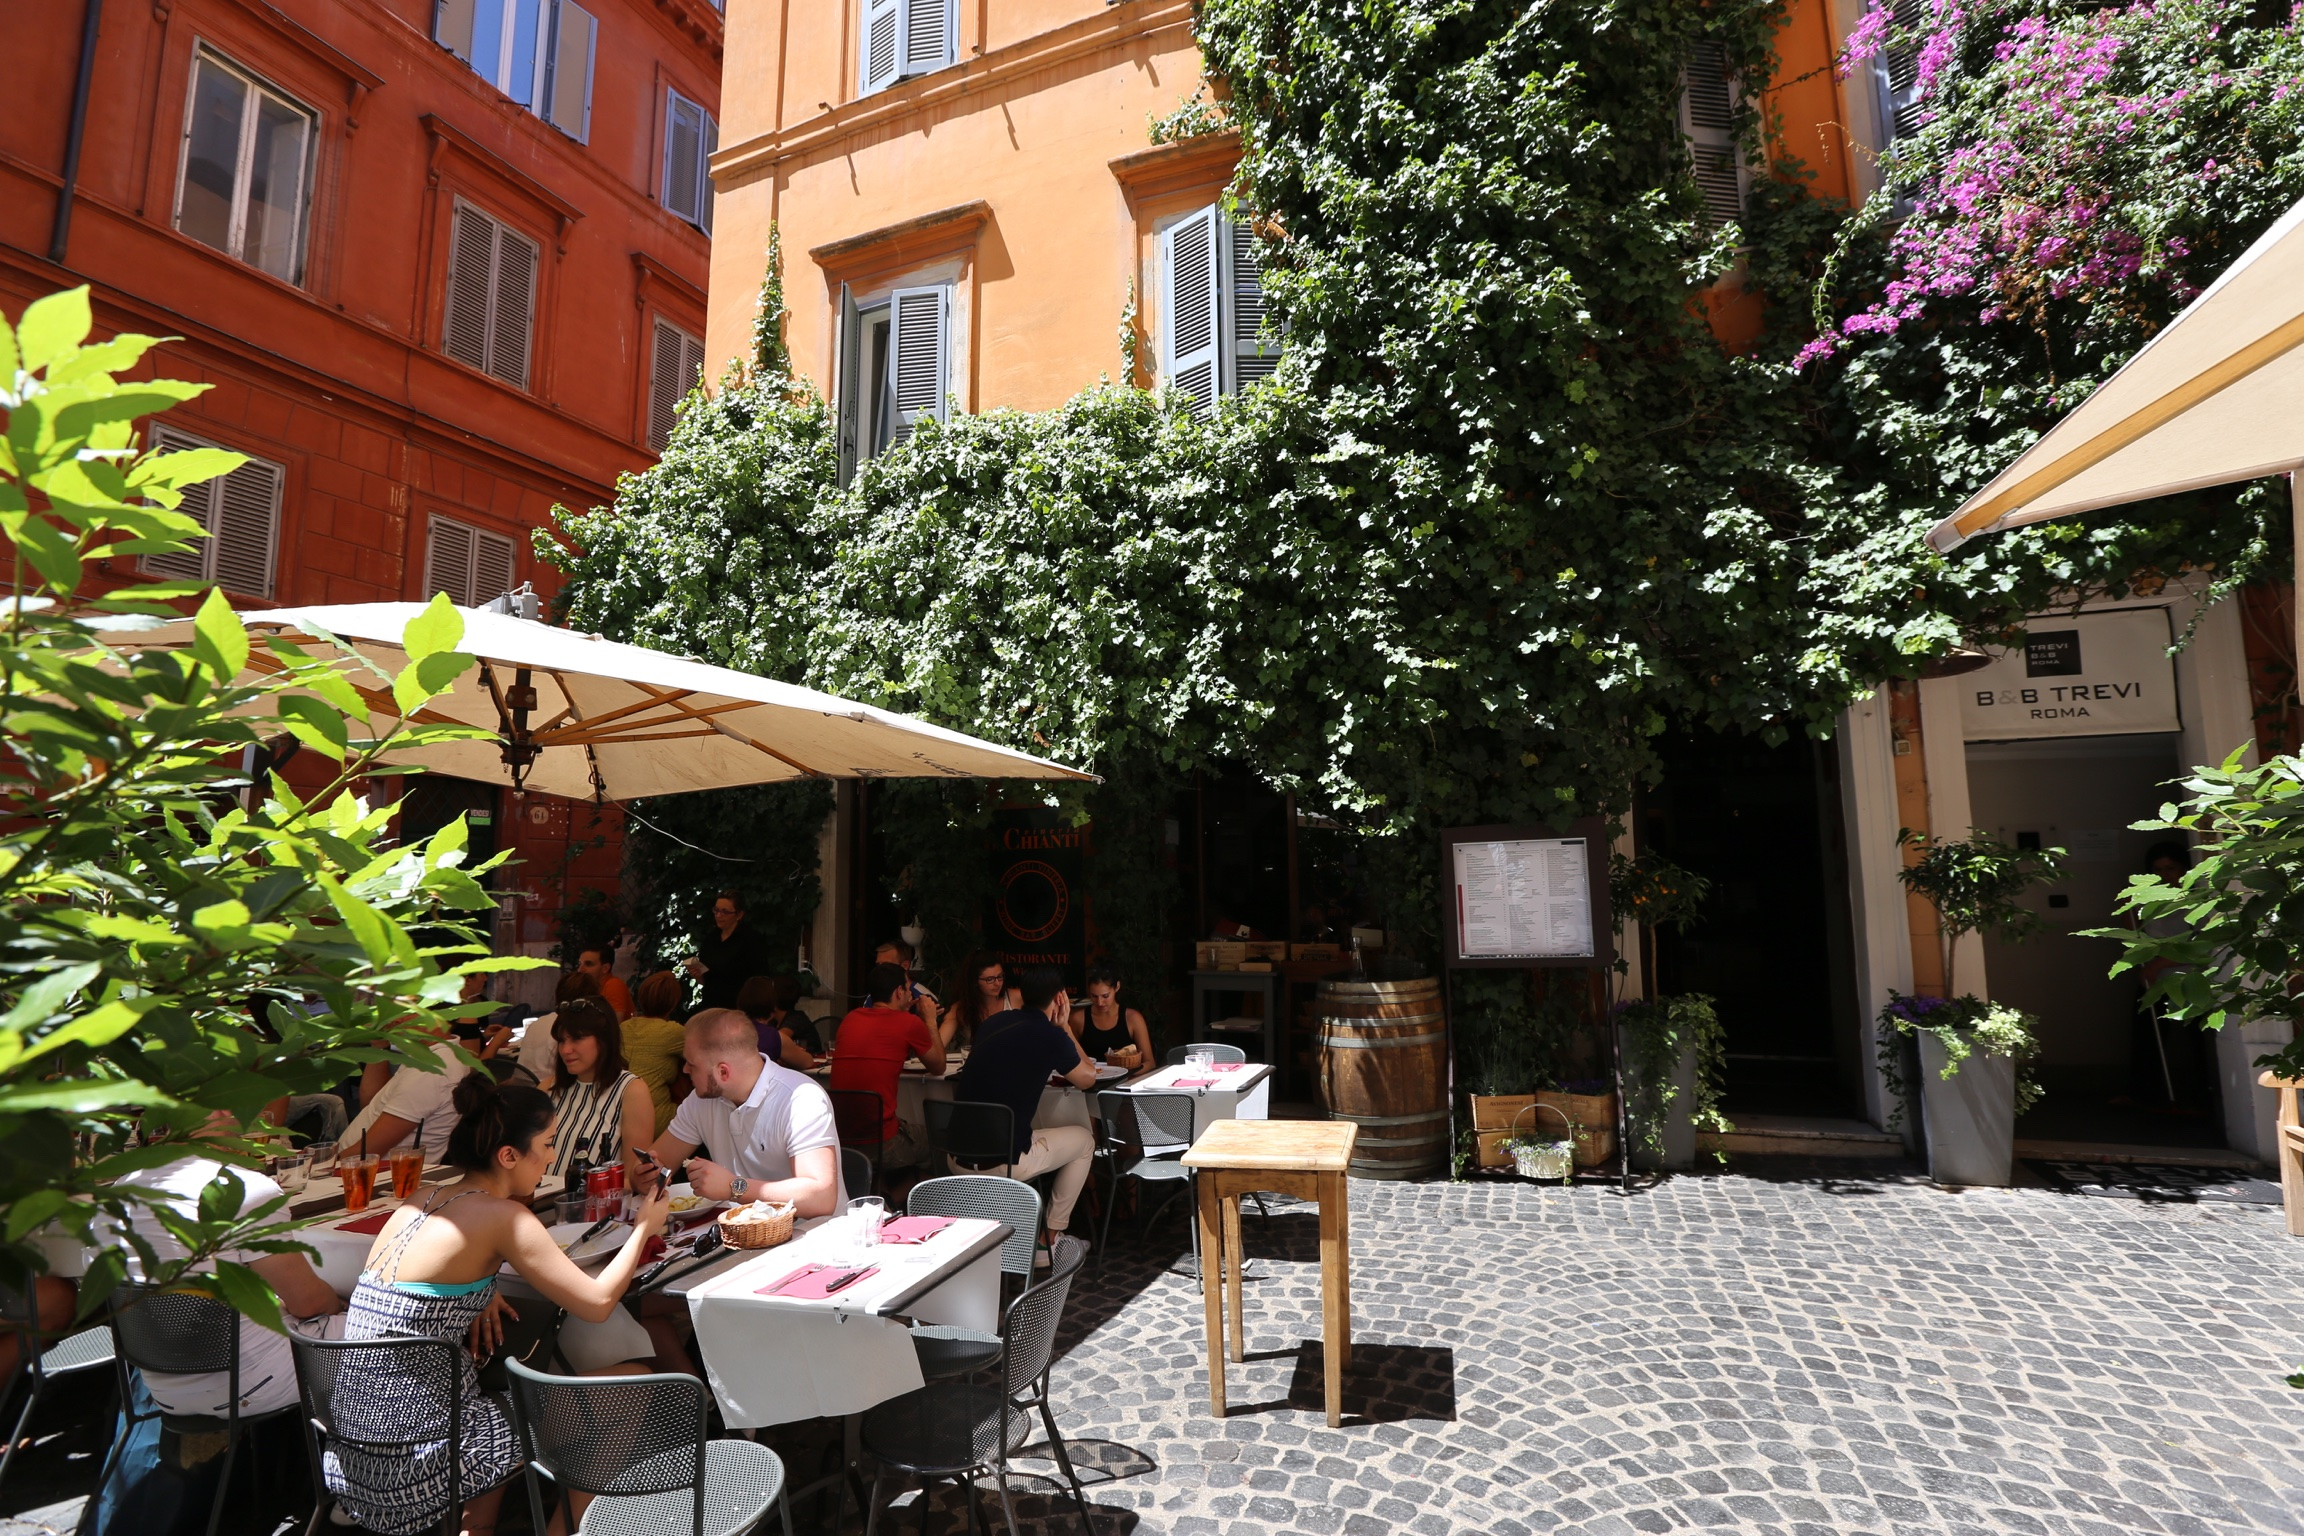 this adorable little corner cafe (Il chianti vineria)is a few blocks from the travi fountain, but doesn't feel touristy at all!